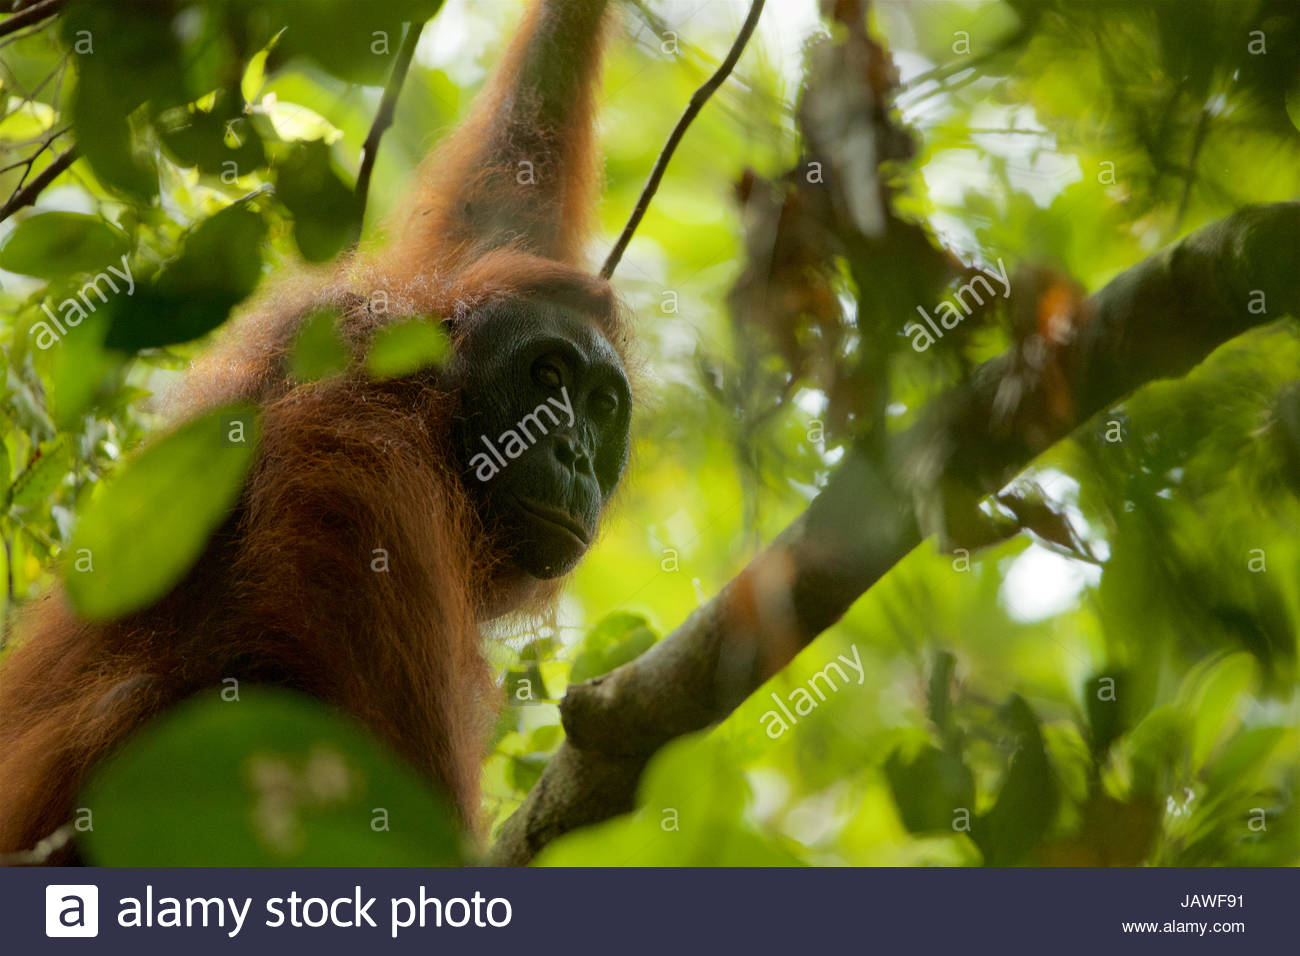 A female orangutan, Pongo pygmaeus wurmbii, rests in a tree in Gunung Palung National Park. - Stock Image